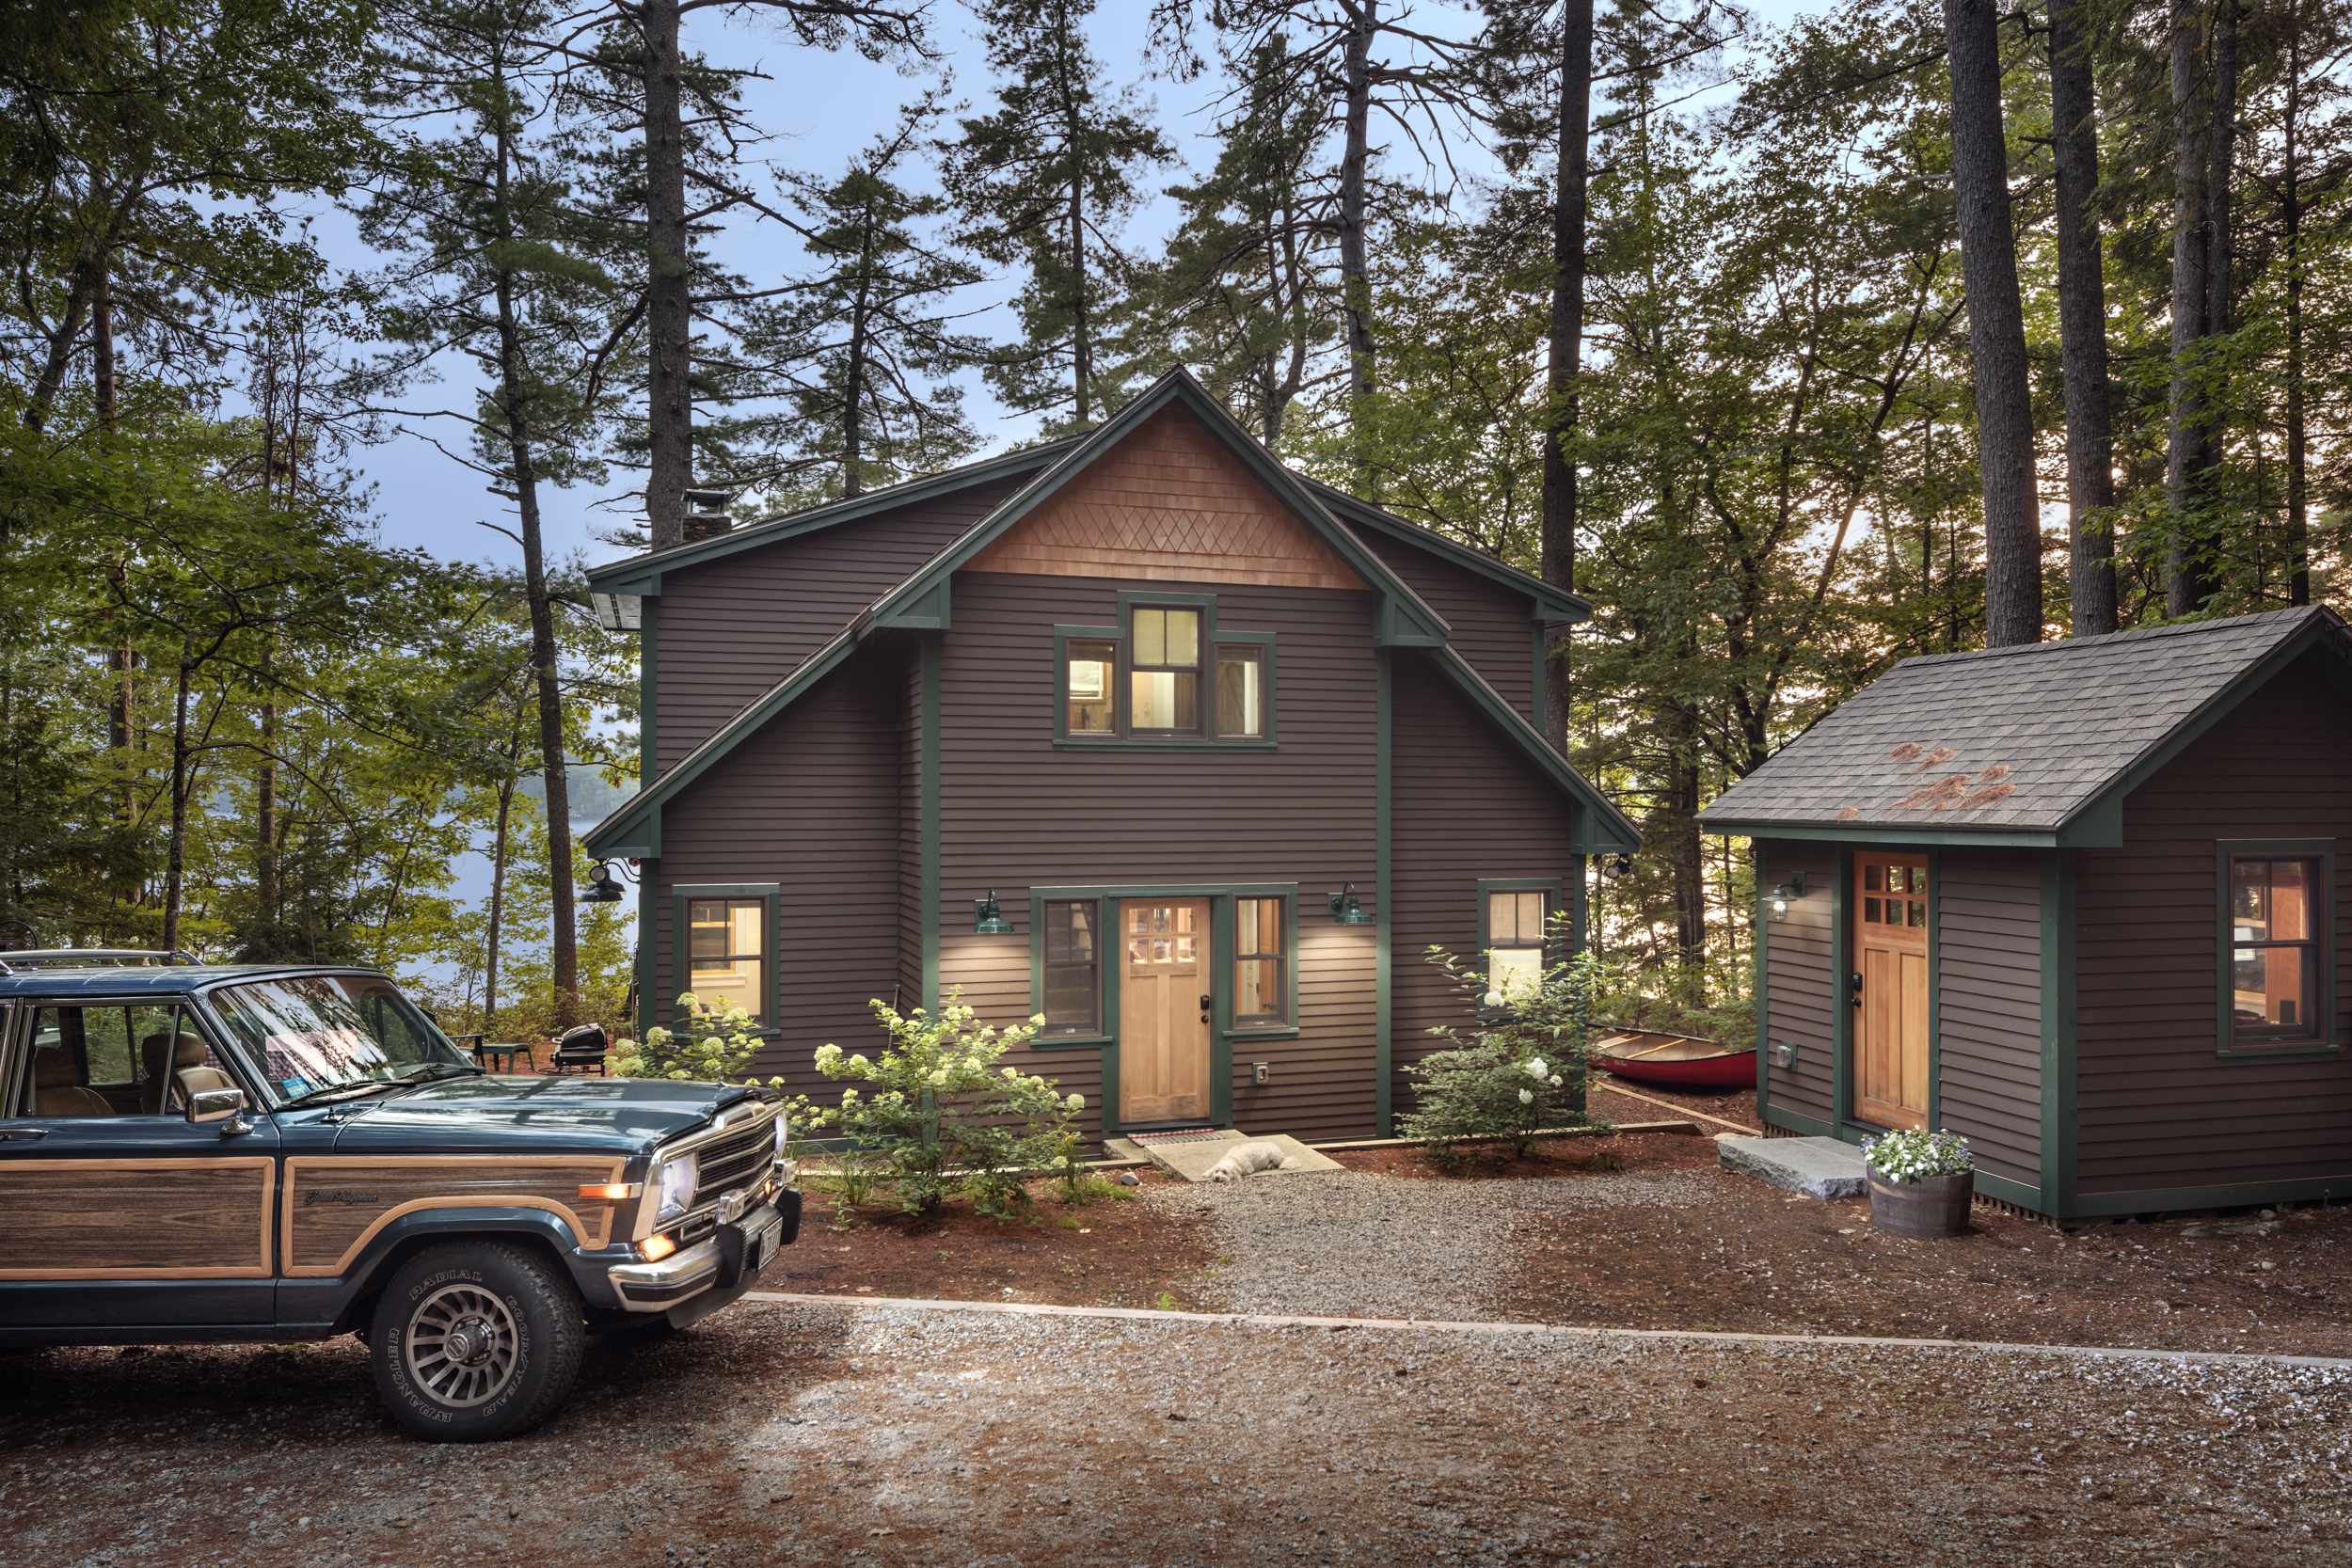 This Maine Summer home is located in Bridgton. We worked with a small footprint and focused on sustainability and family friendly interior design.